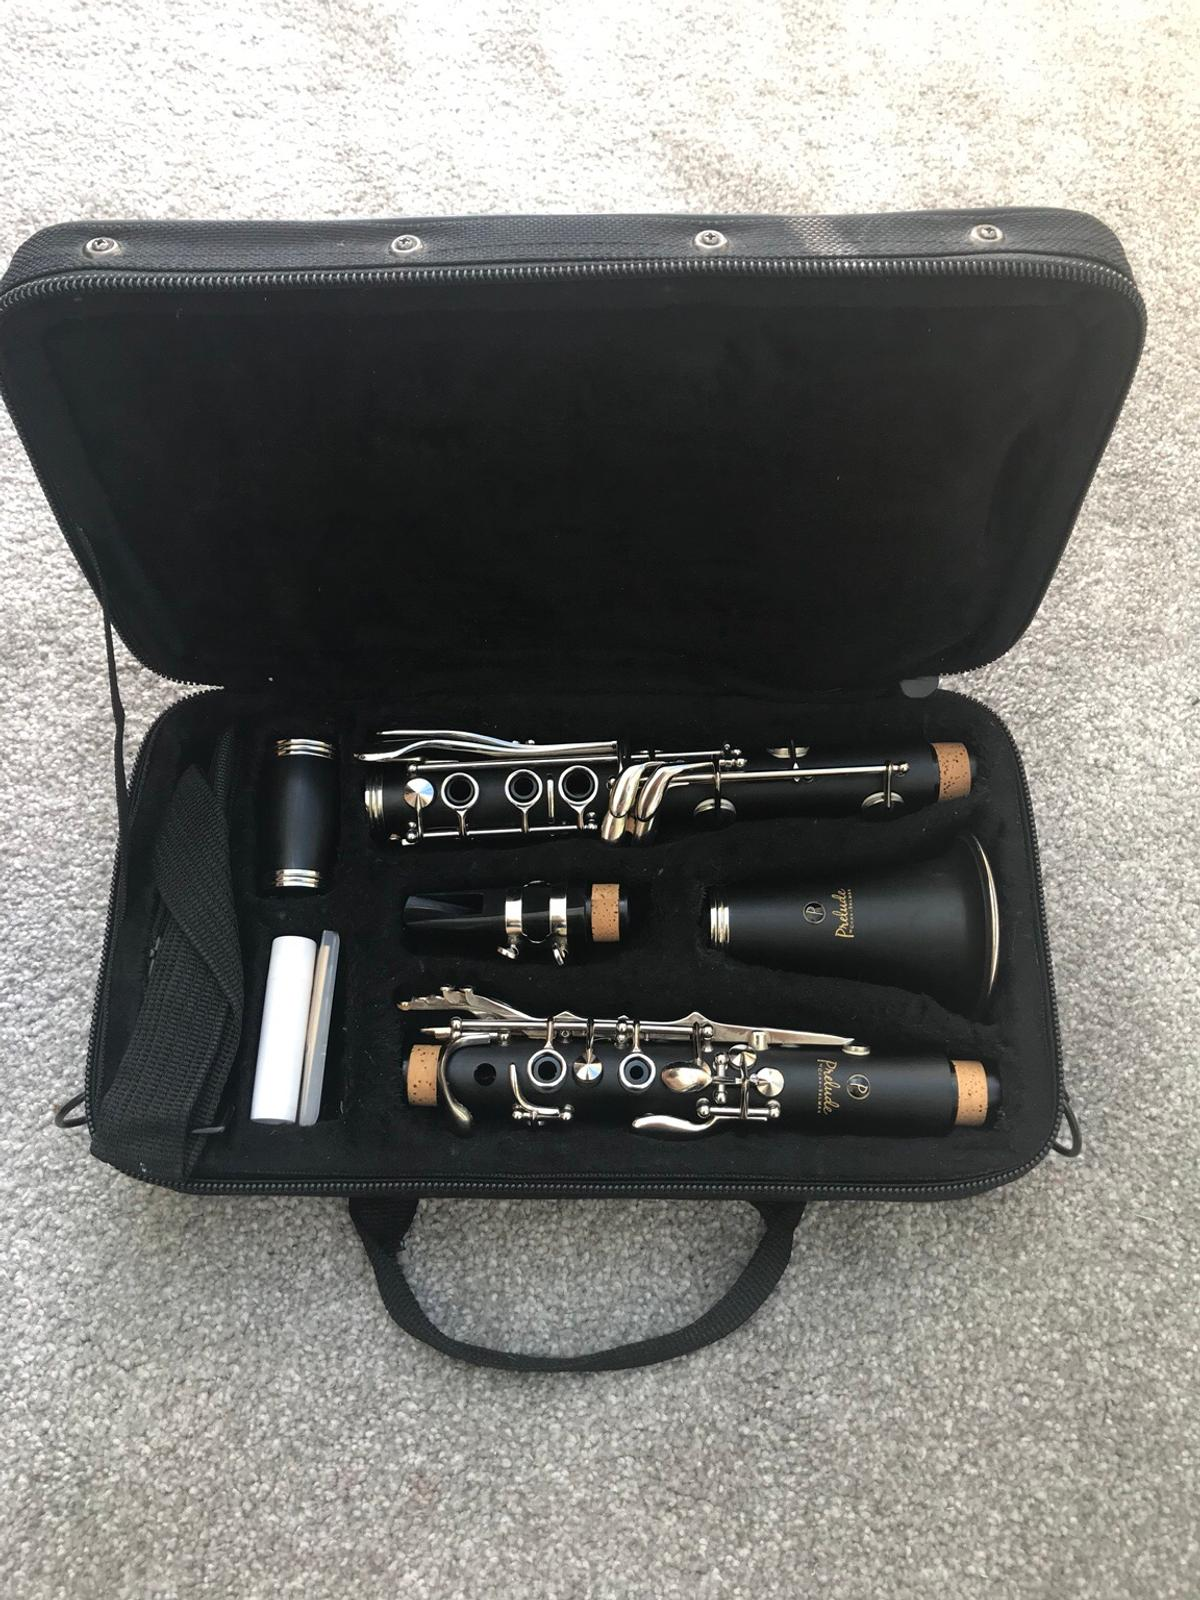 Prelude by CONN - SELMER Clarinet in SN13 Neston for £80 00